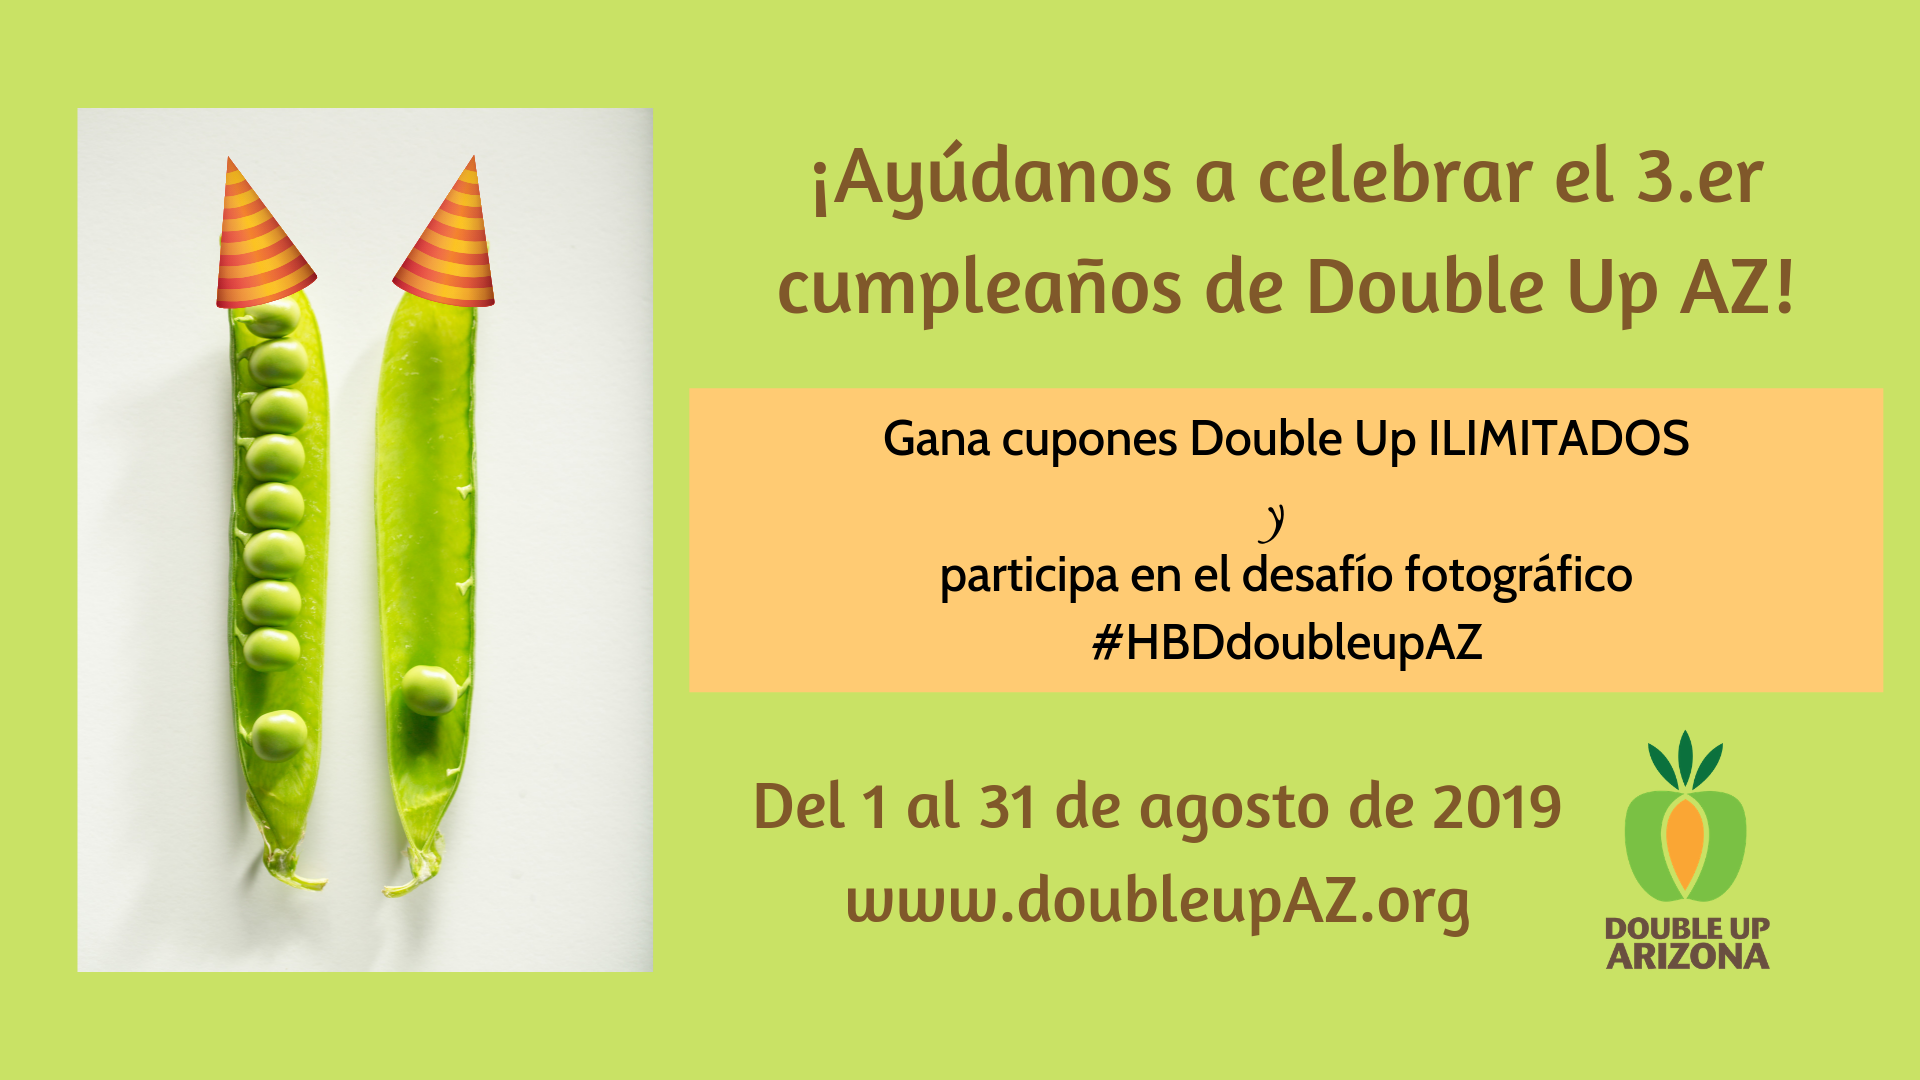 Spanish-DU_bday_FB cover image.png